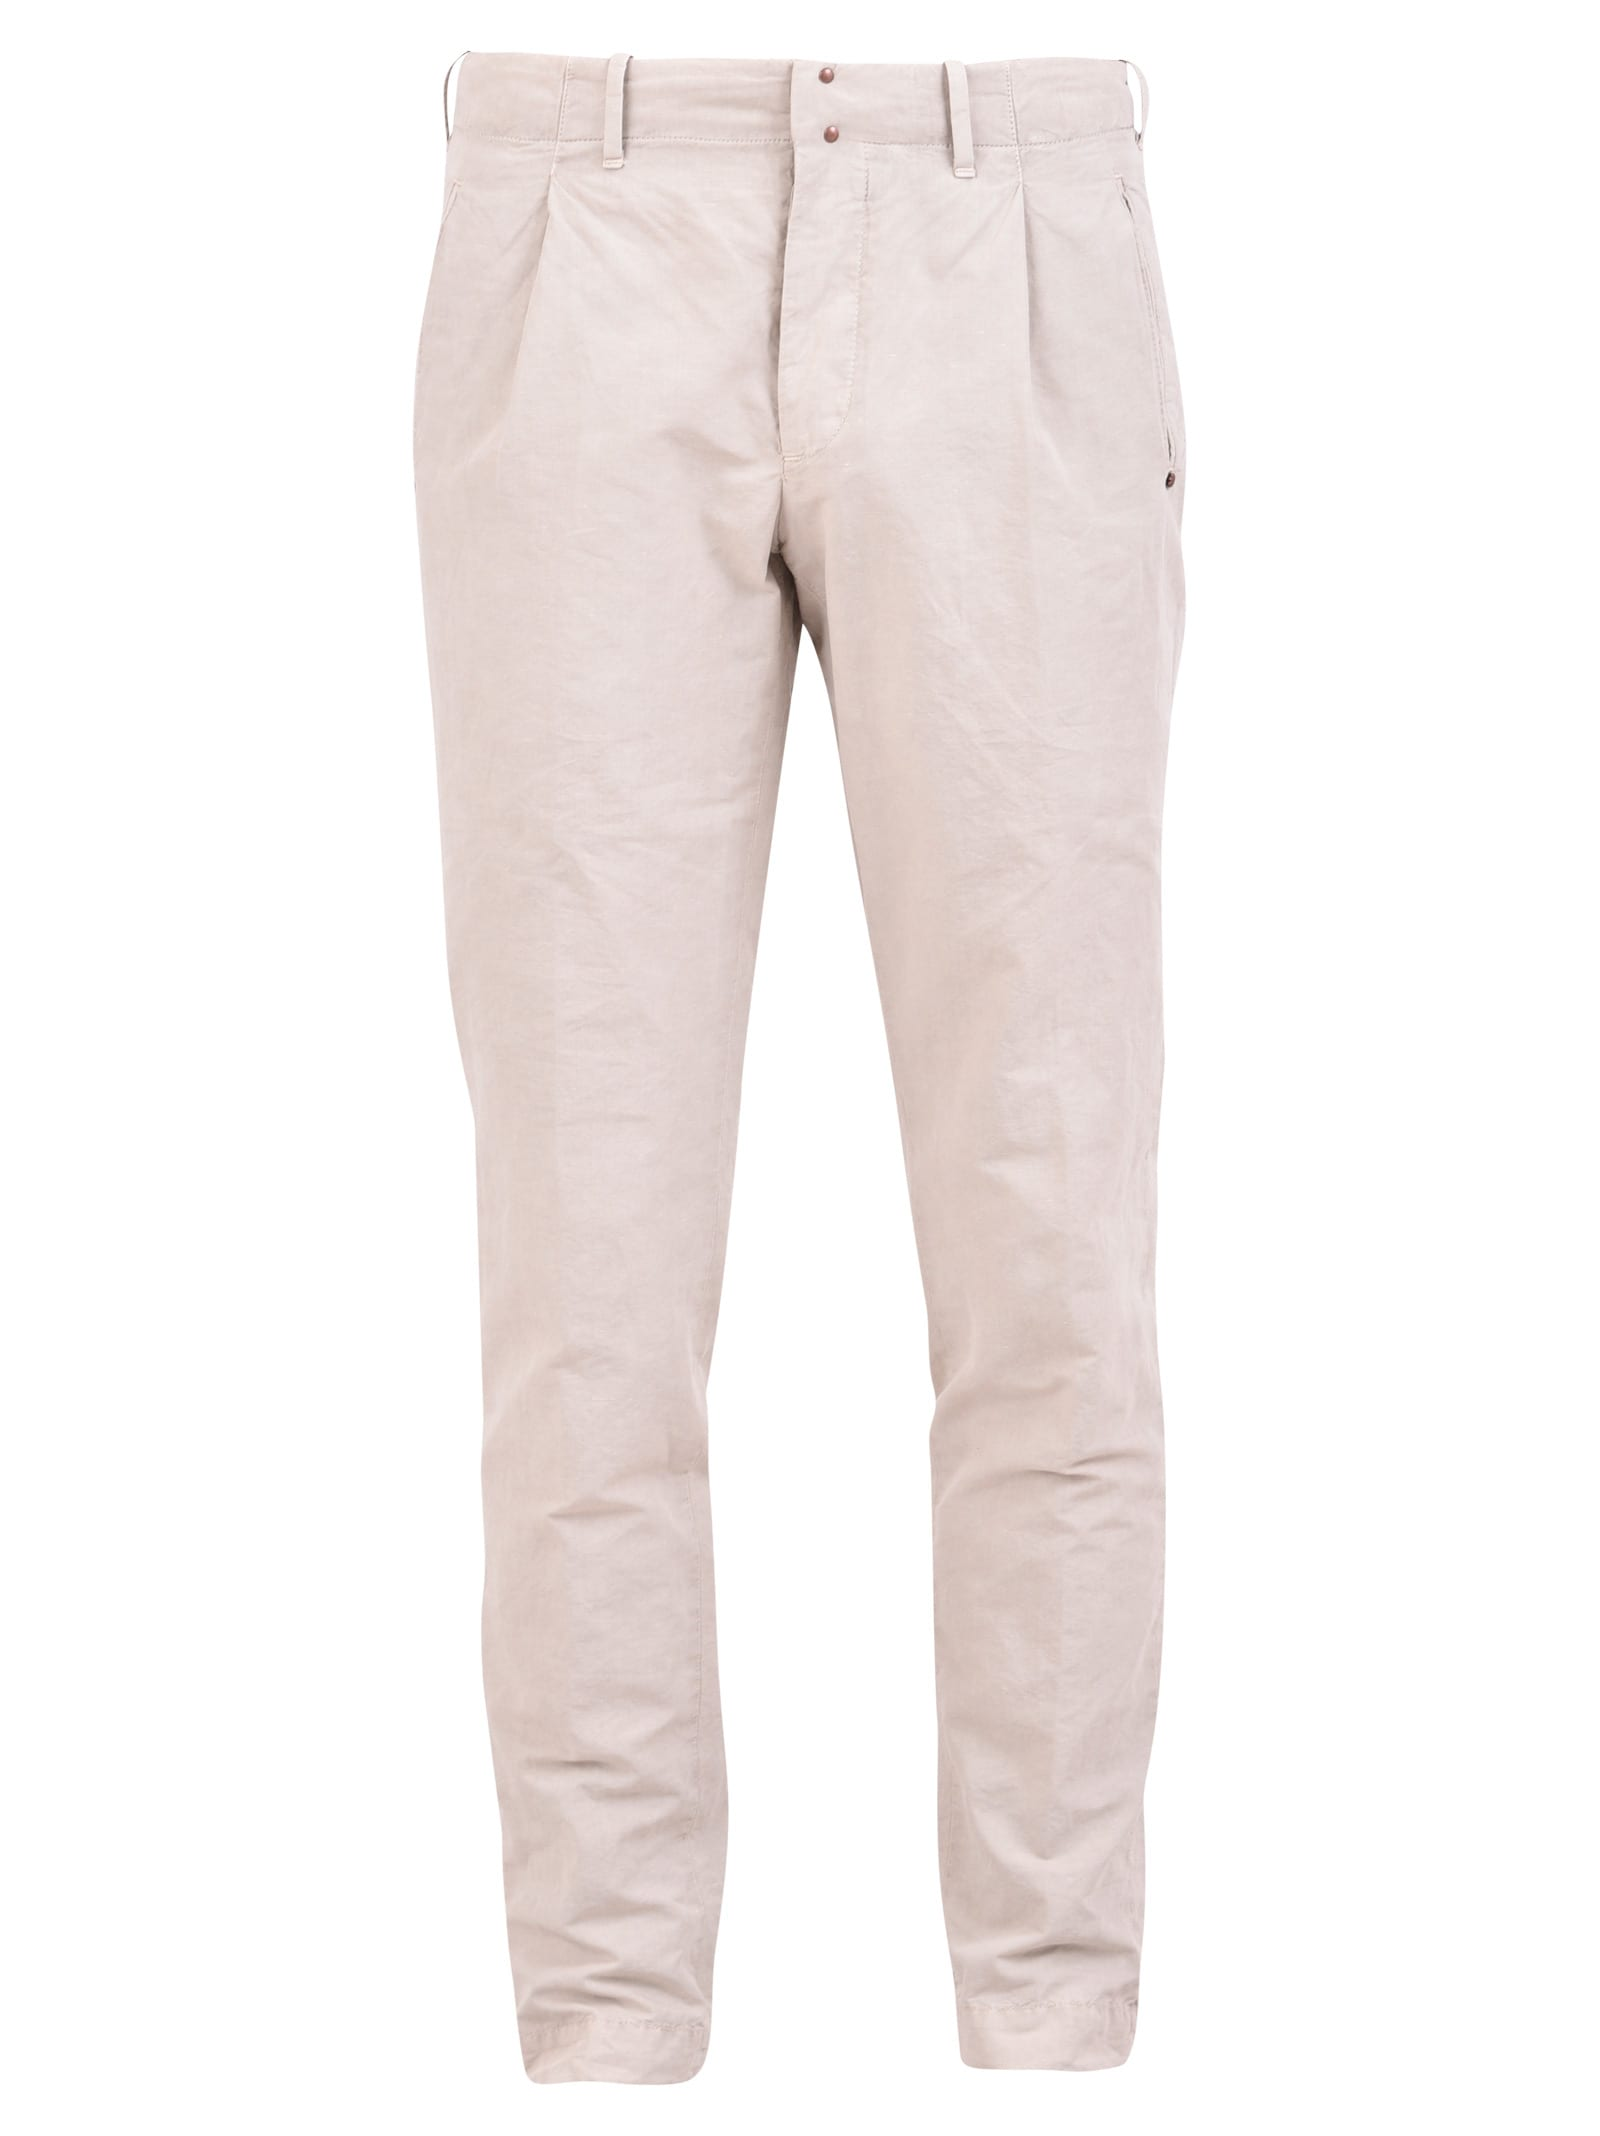 Incotex Carrot Fit Trousers